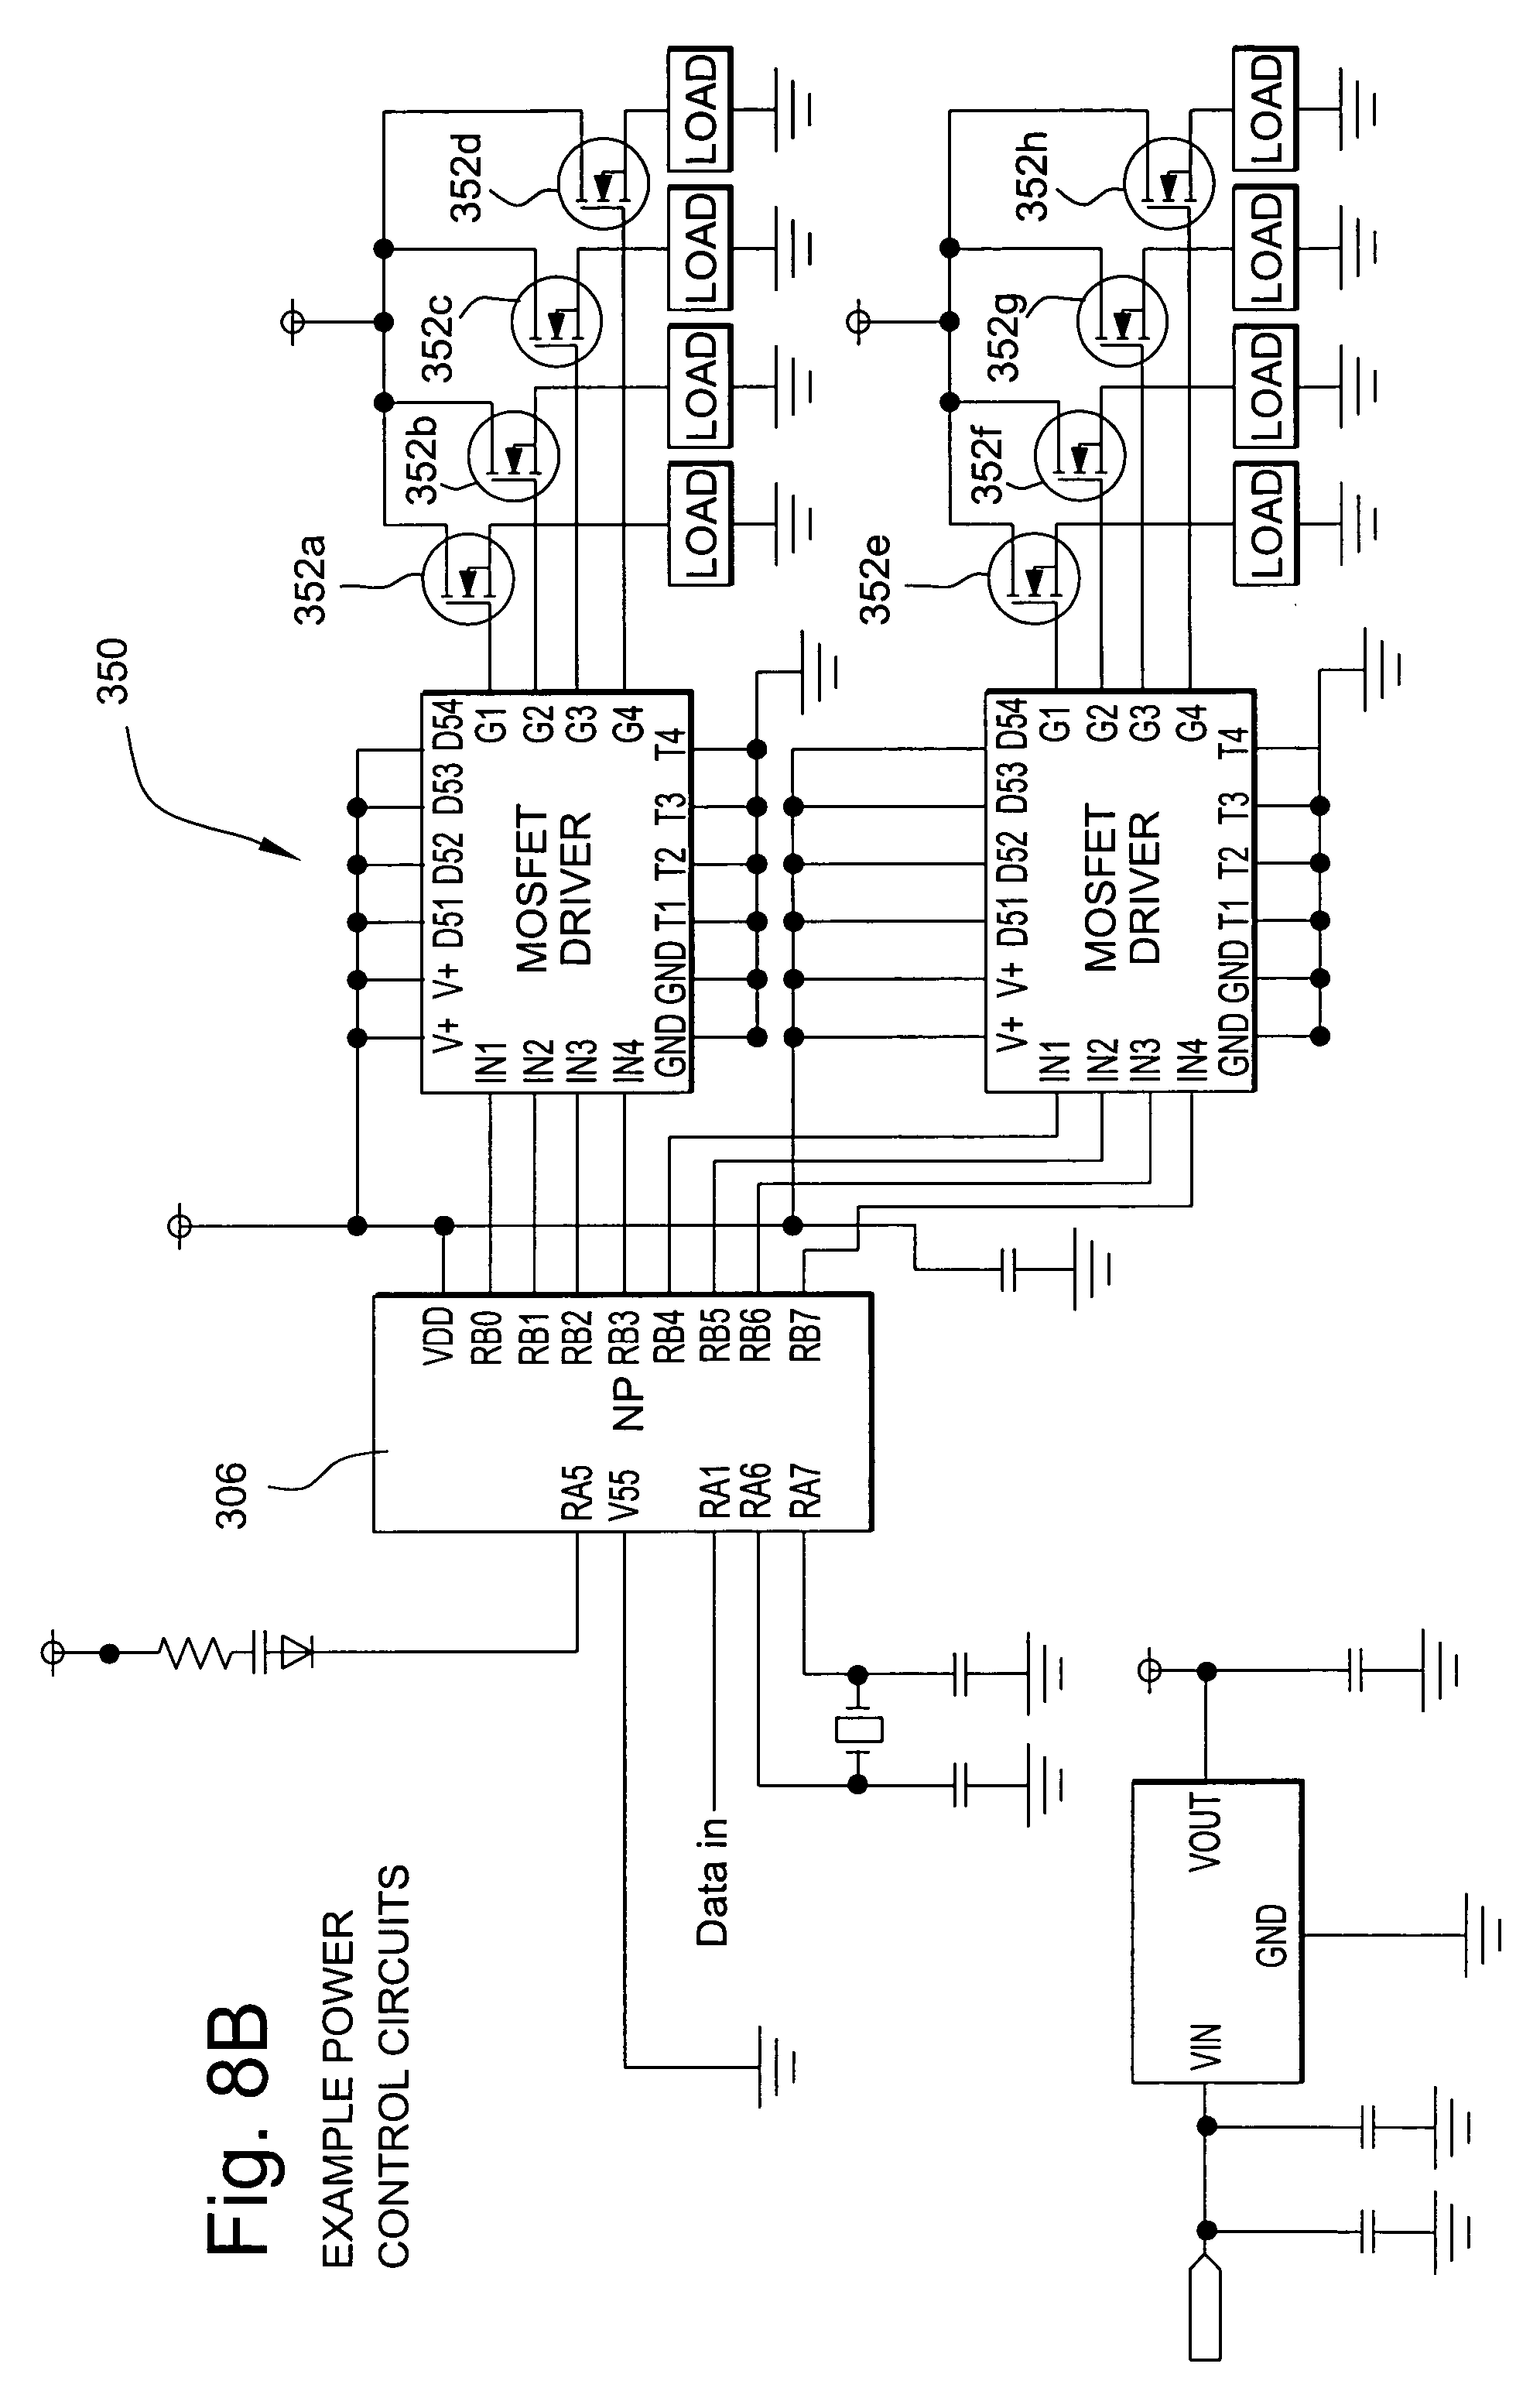 Code 3 Mx7000 Wiring Diagram